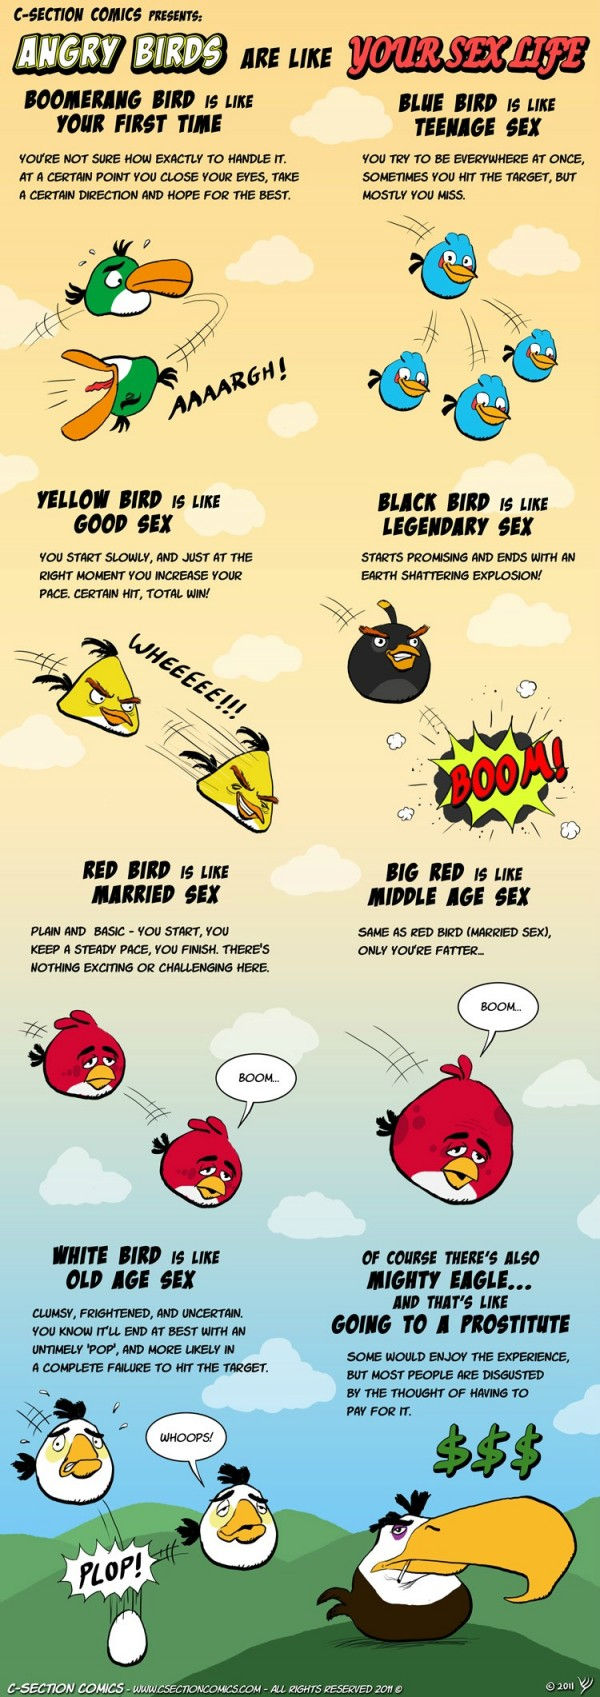 sex compared to angry birds amatuer adult sex